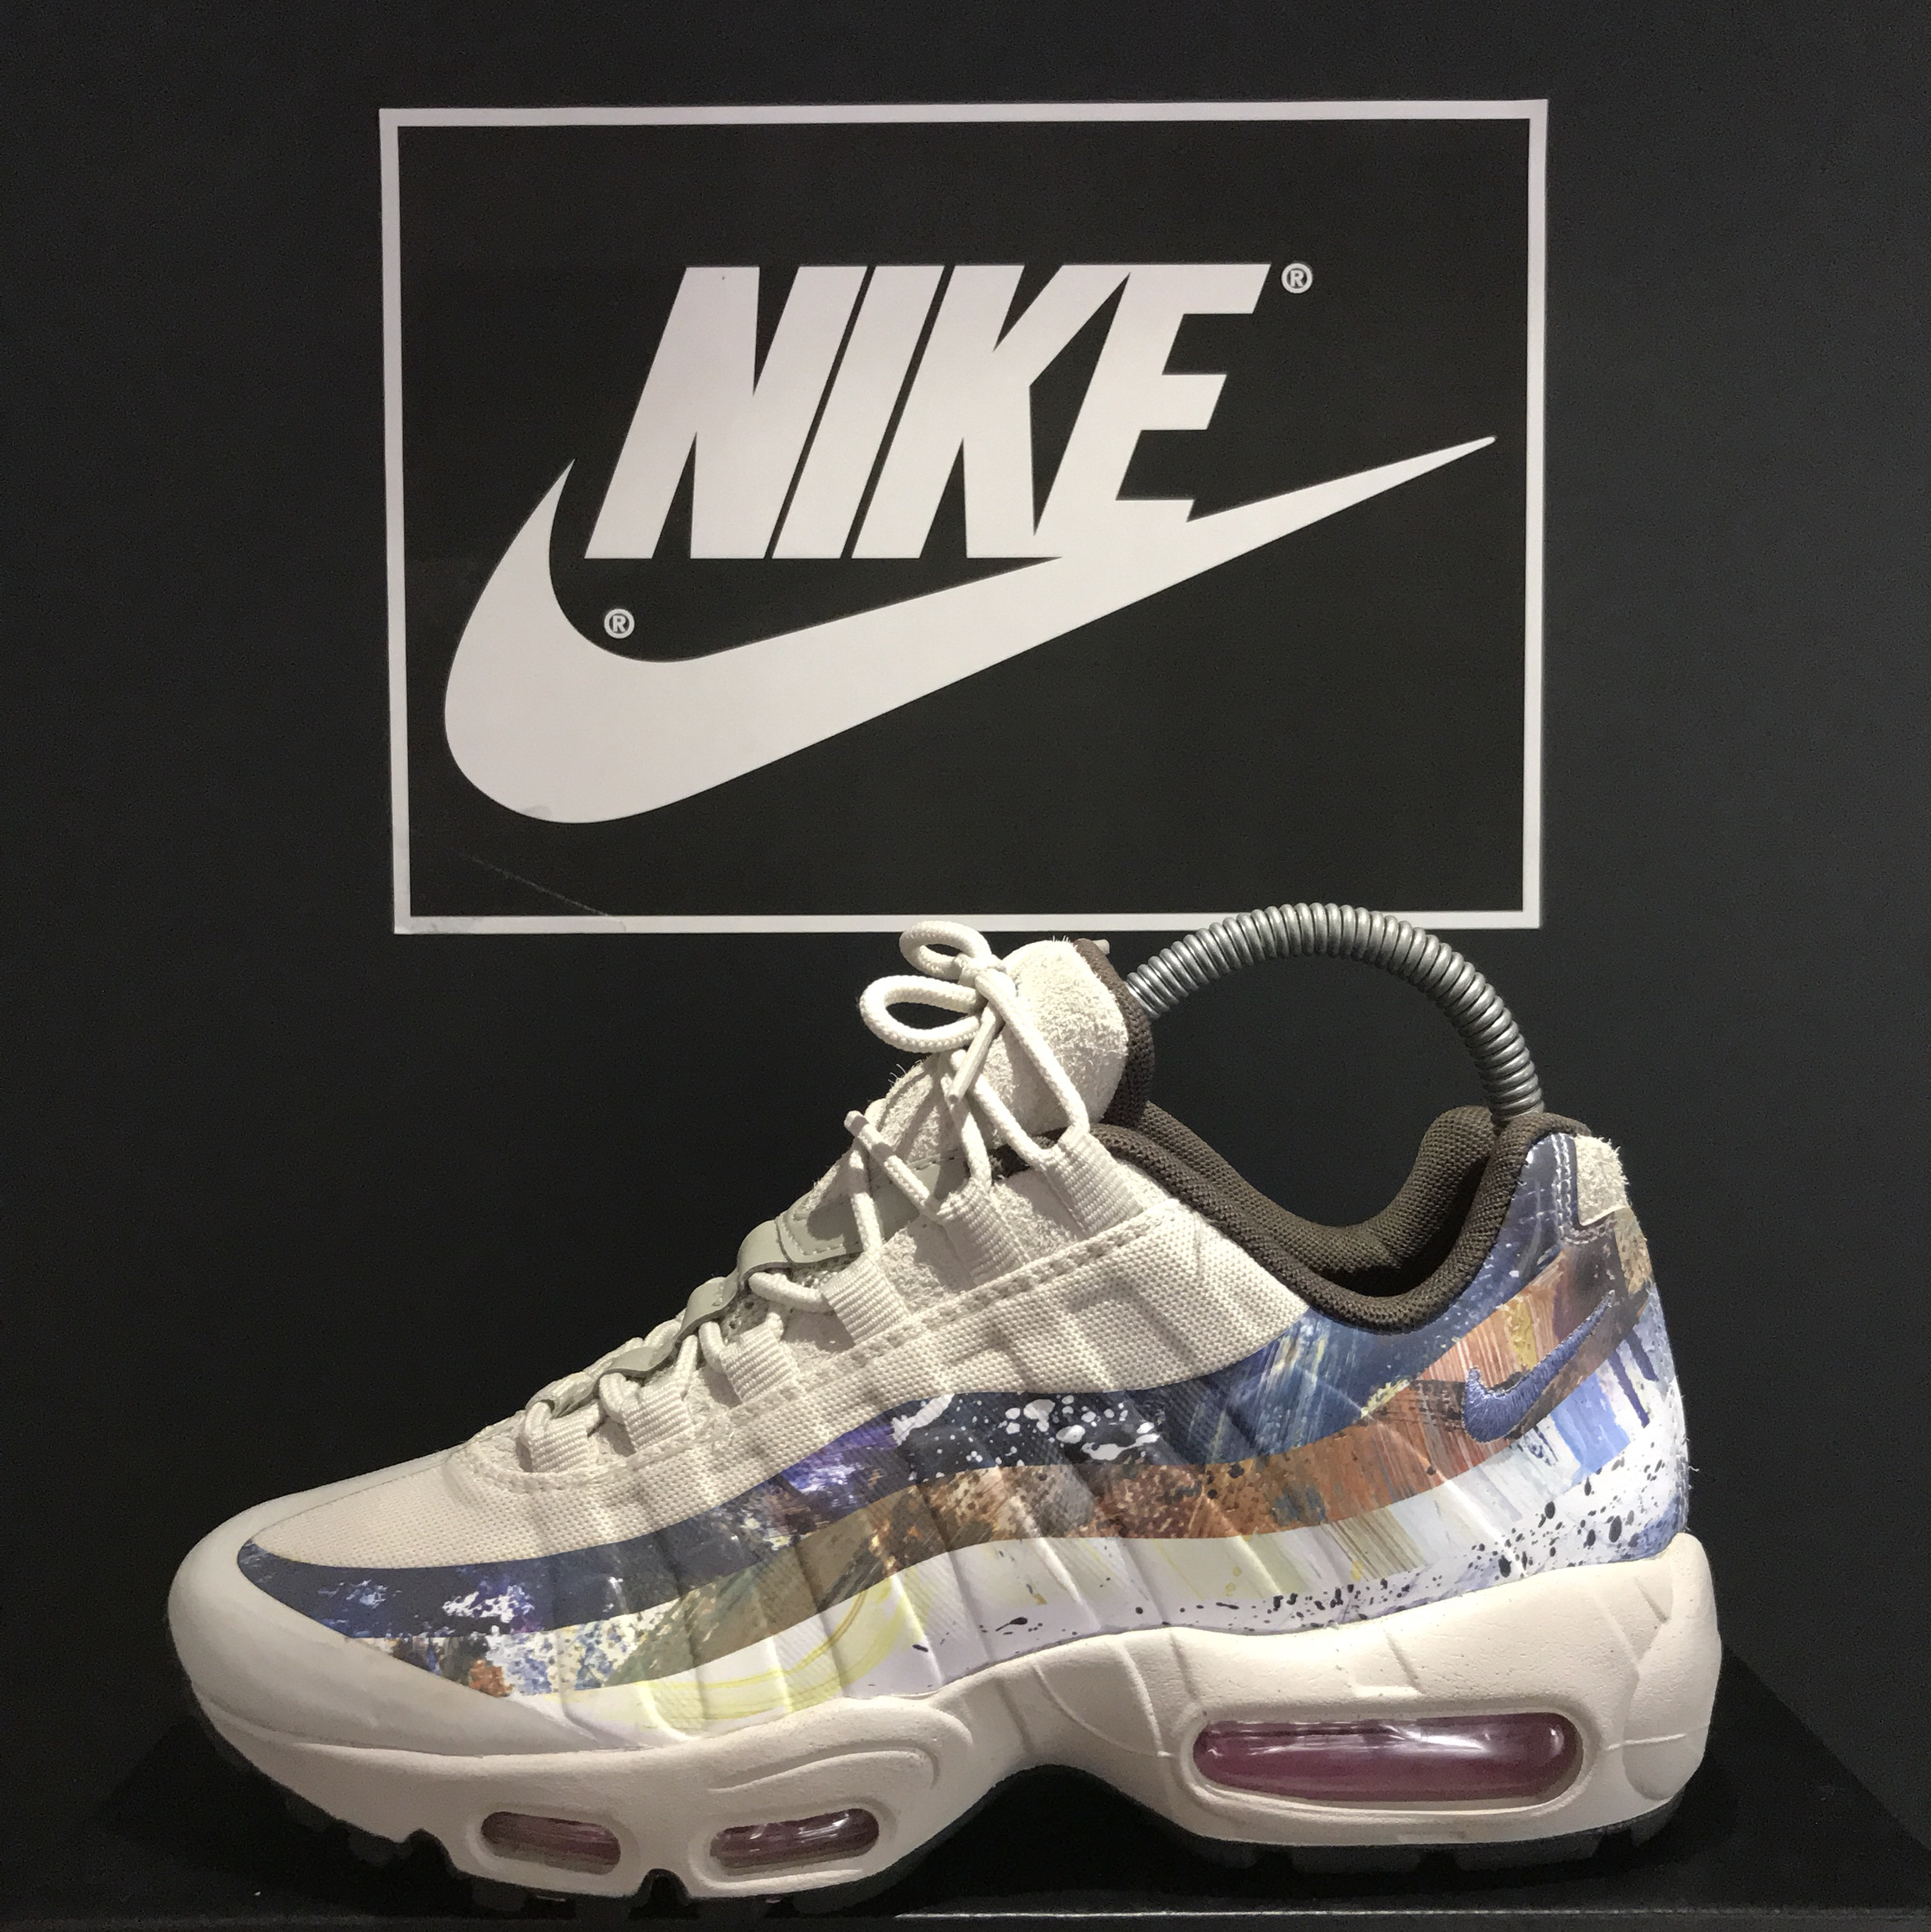 san francisco 4296e f4fc0 Nike Air Max 95 x Dave White 'Rabbit' Size 5.5... - Depop